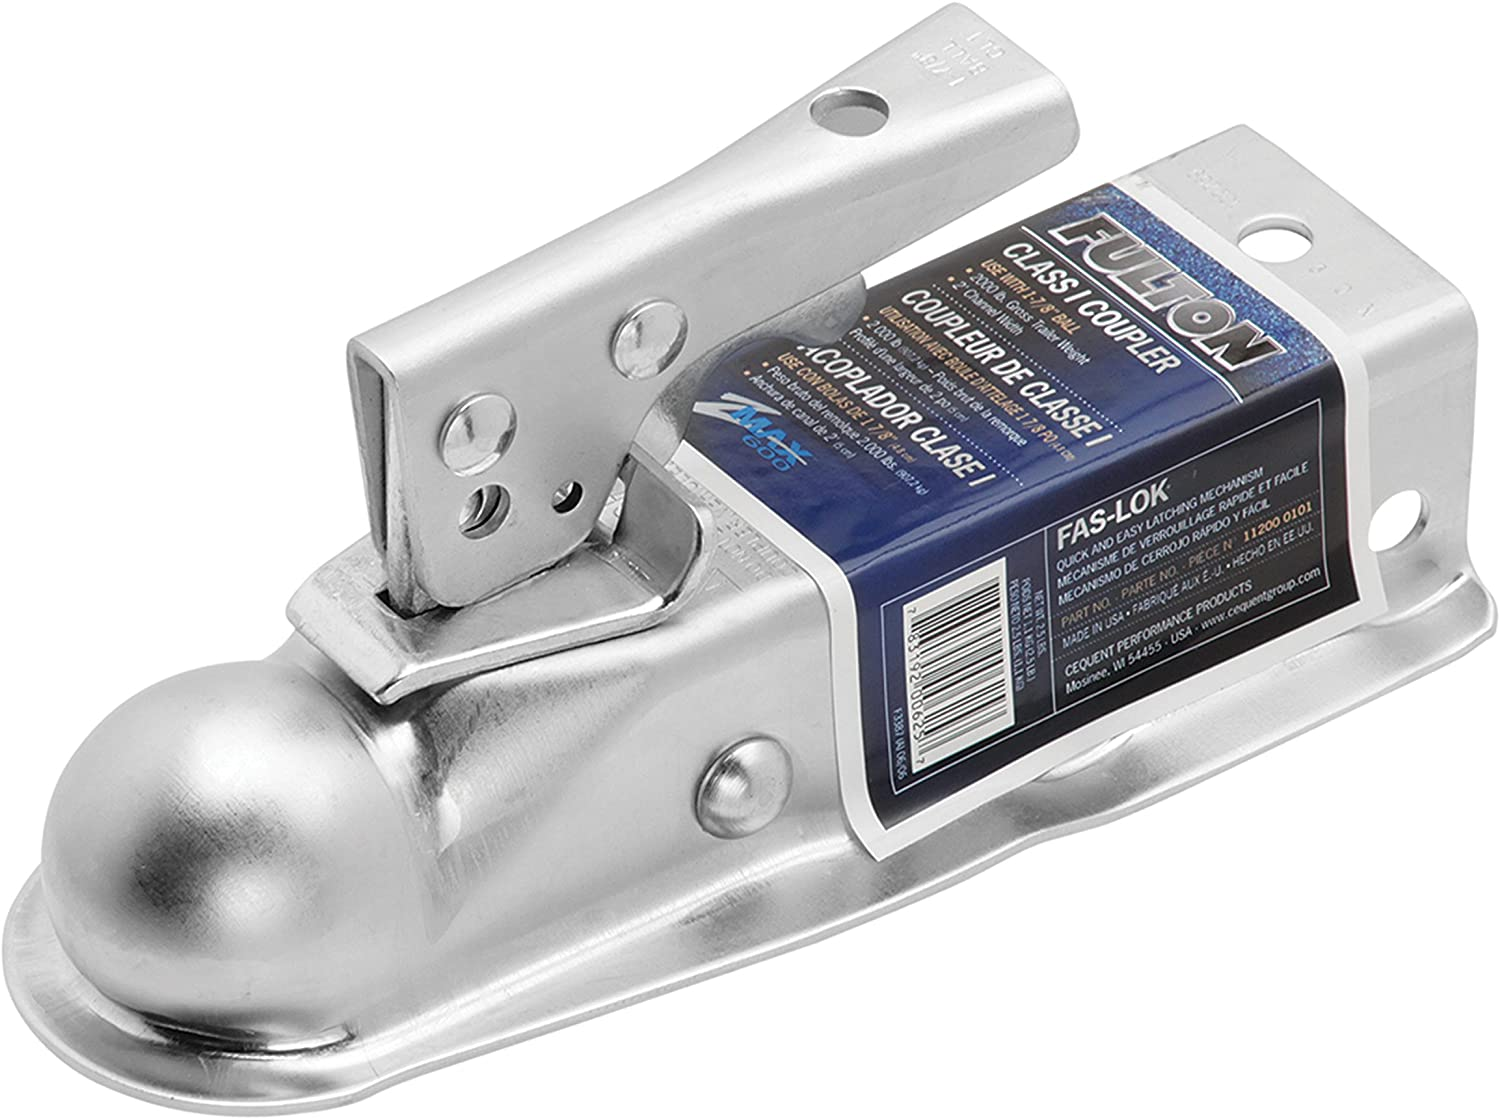 Lok Straight Class I Tongue Coupler 1 7//8 inch ball 2000 lbs. Fulton Fas 2 WIDE CHANNEL